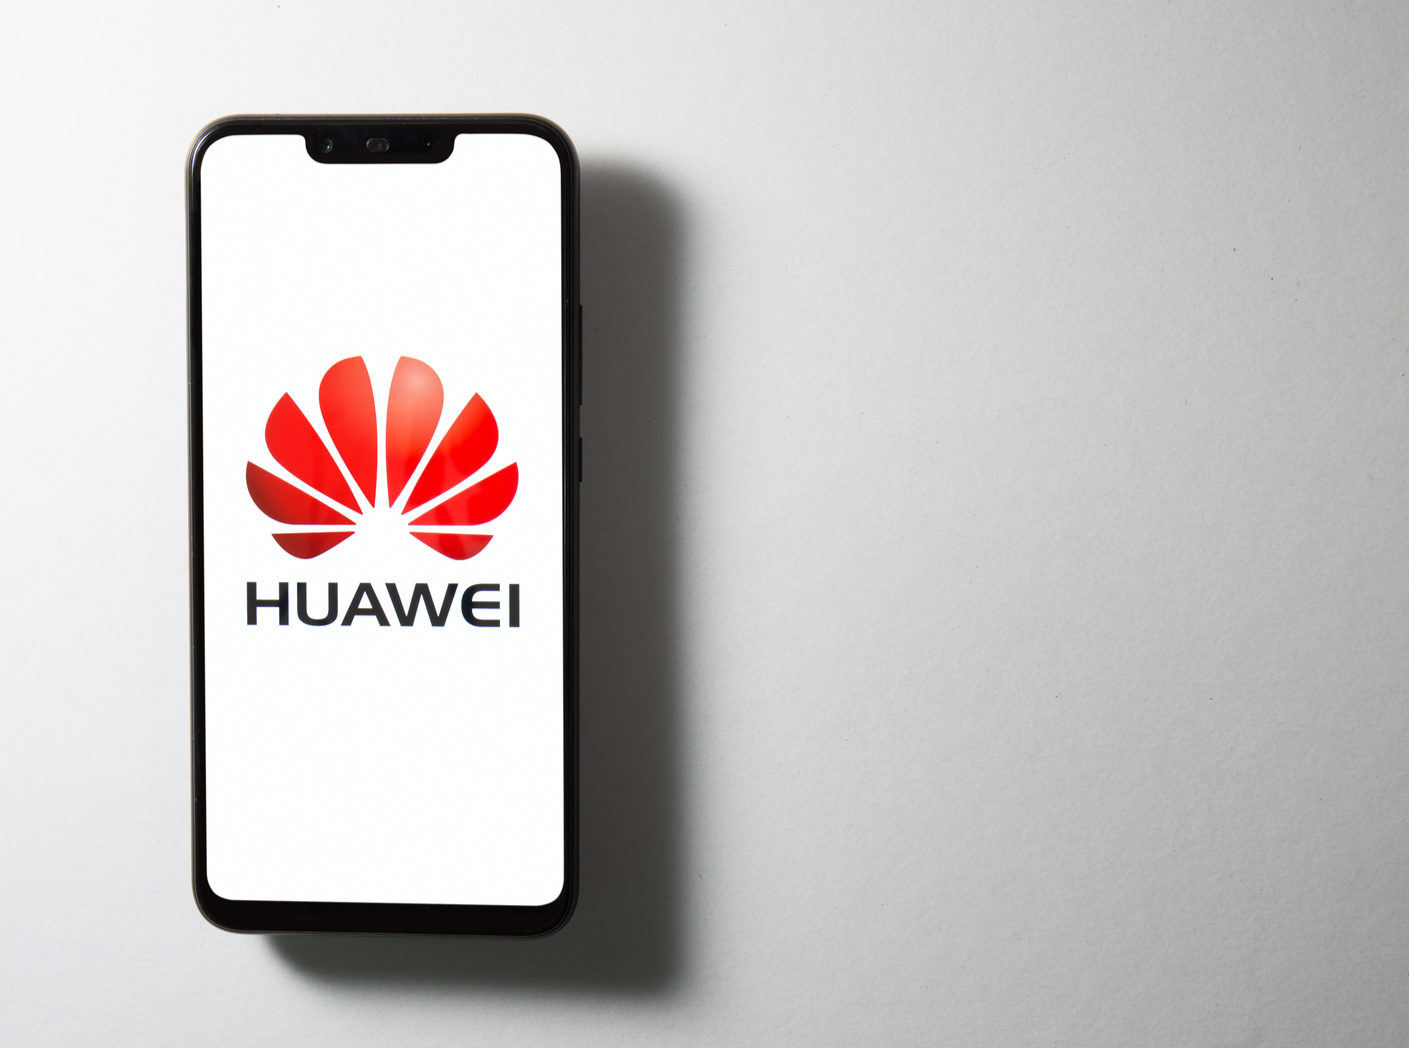 Huawei 5G in the UK: Public divided over trustworthiness of Chinese tech giant